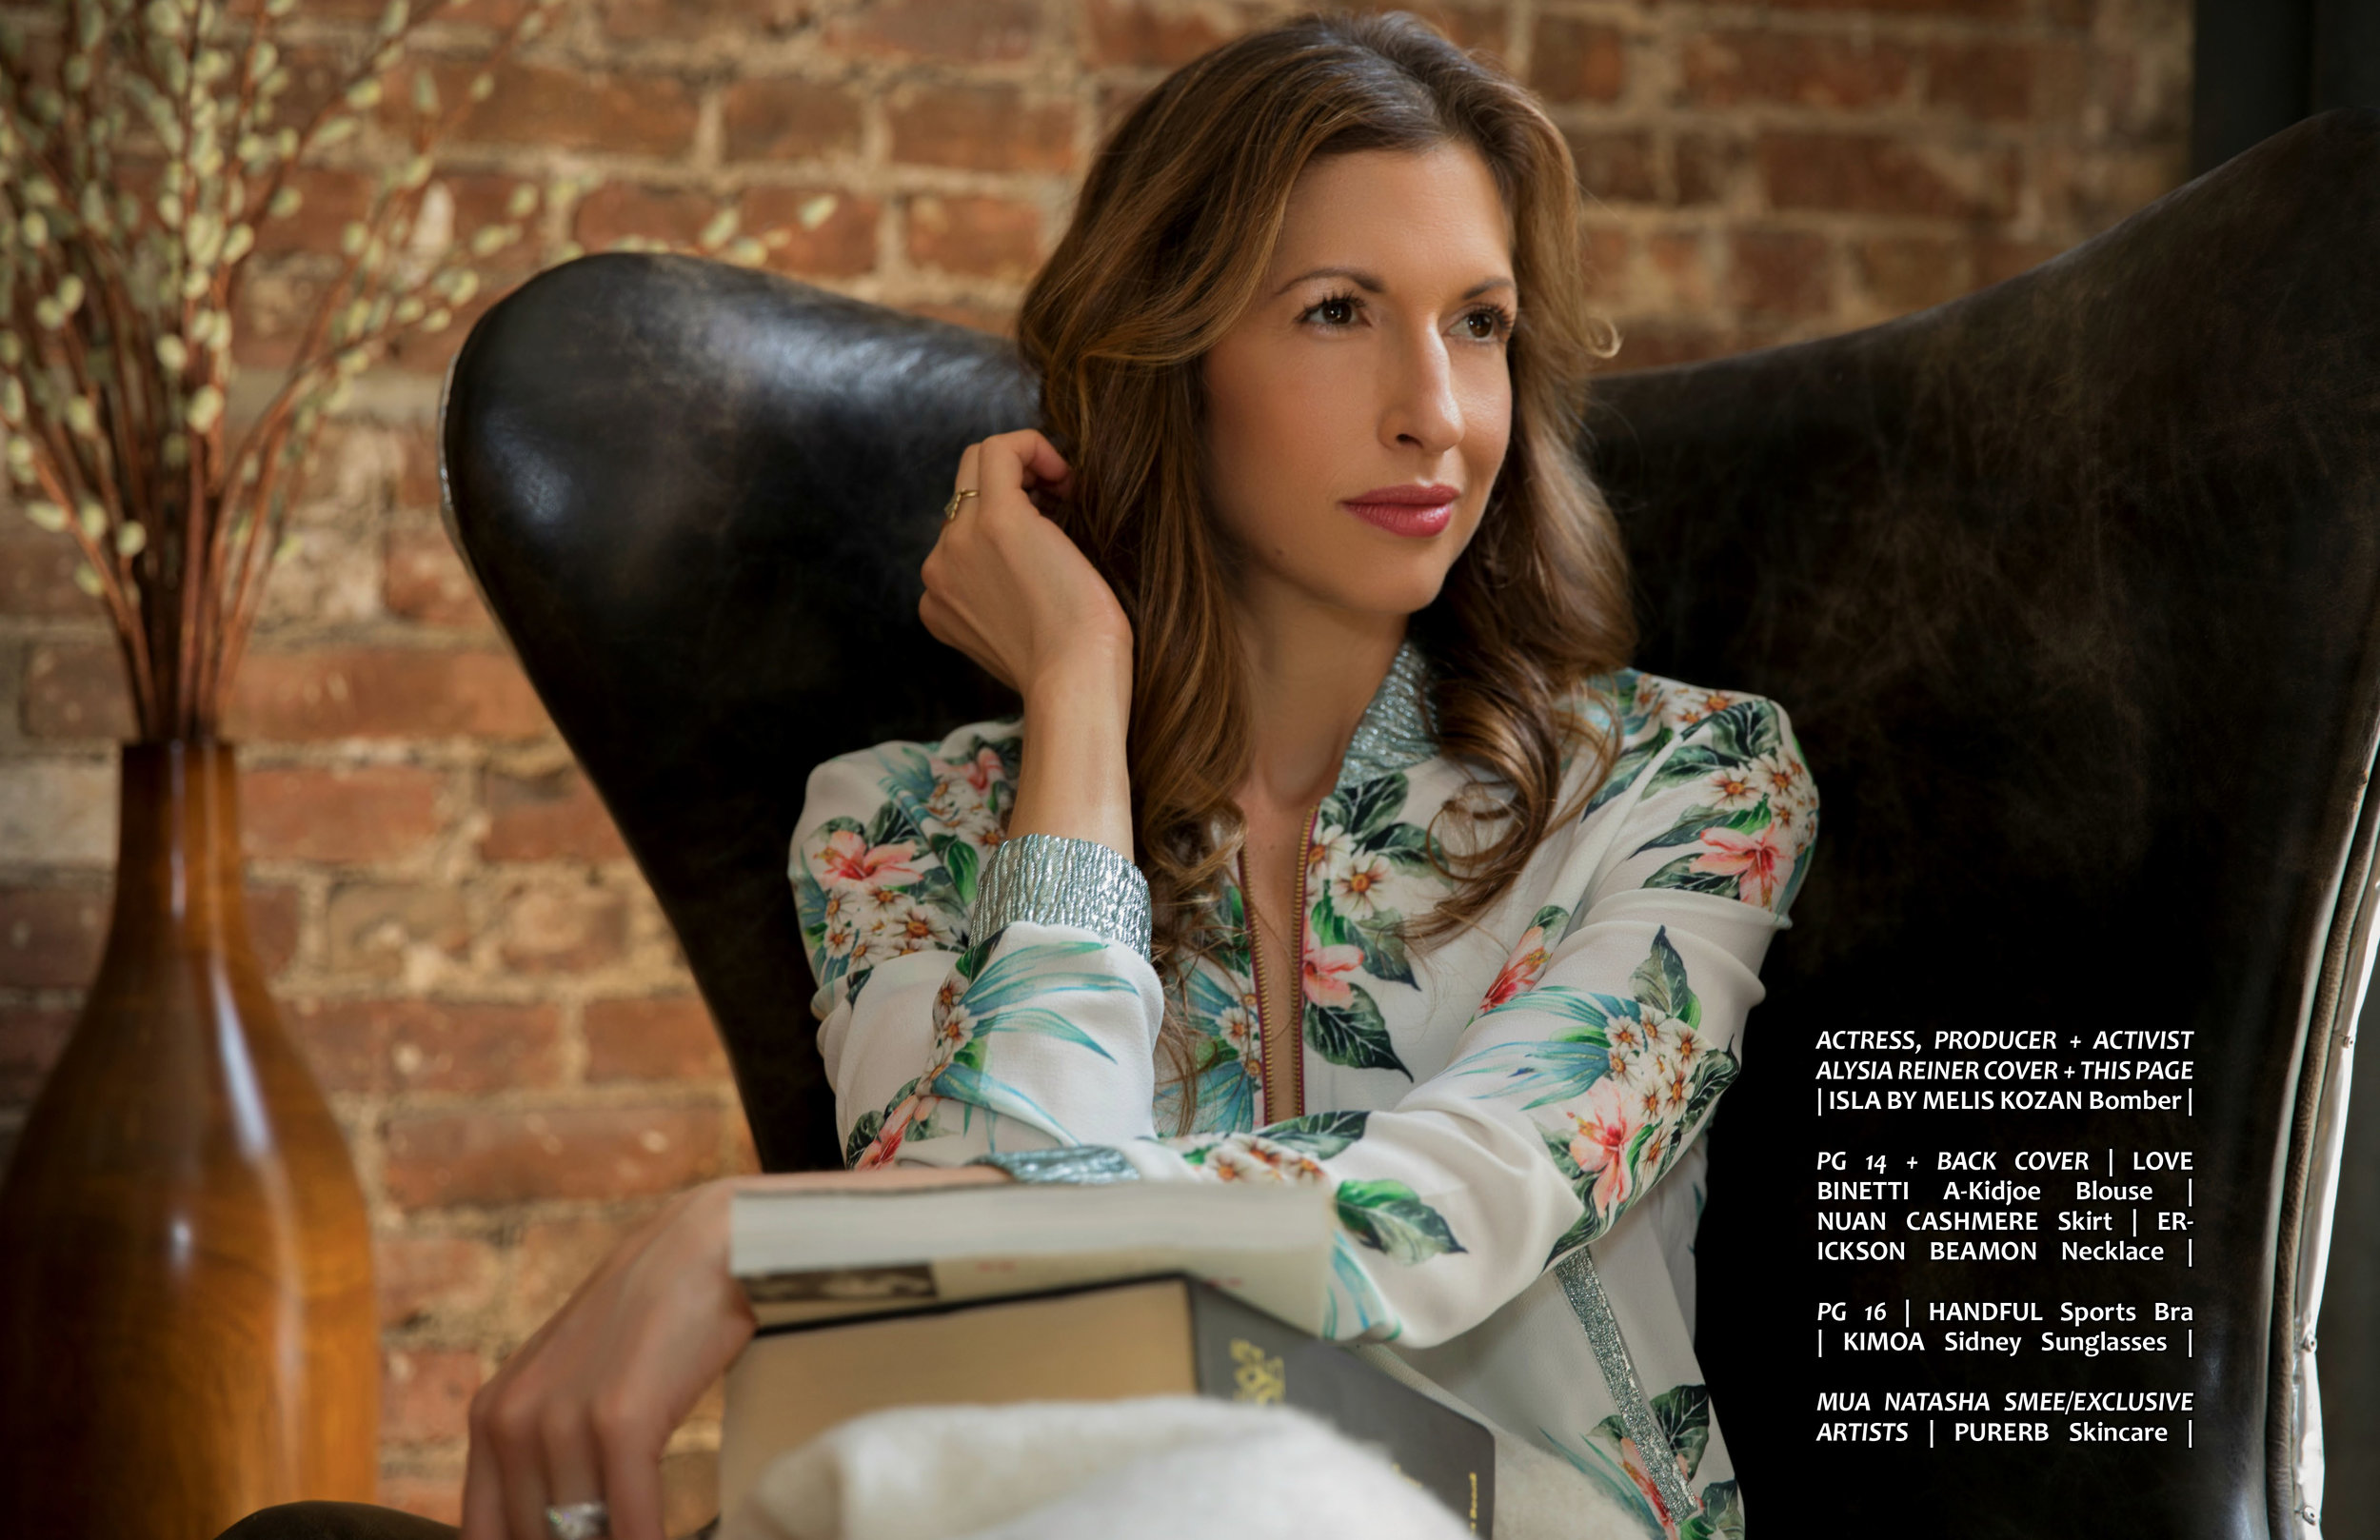 ATHLEISURE MAG JUN ISSUE WITH OUR CELEB COVER, ALYSIA REINER OF NETFLIX'S ORANGE IS THE NEW BLACK